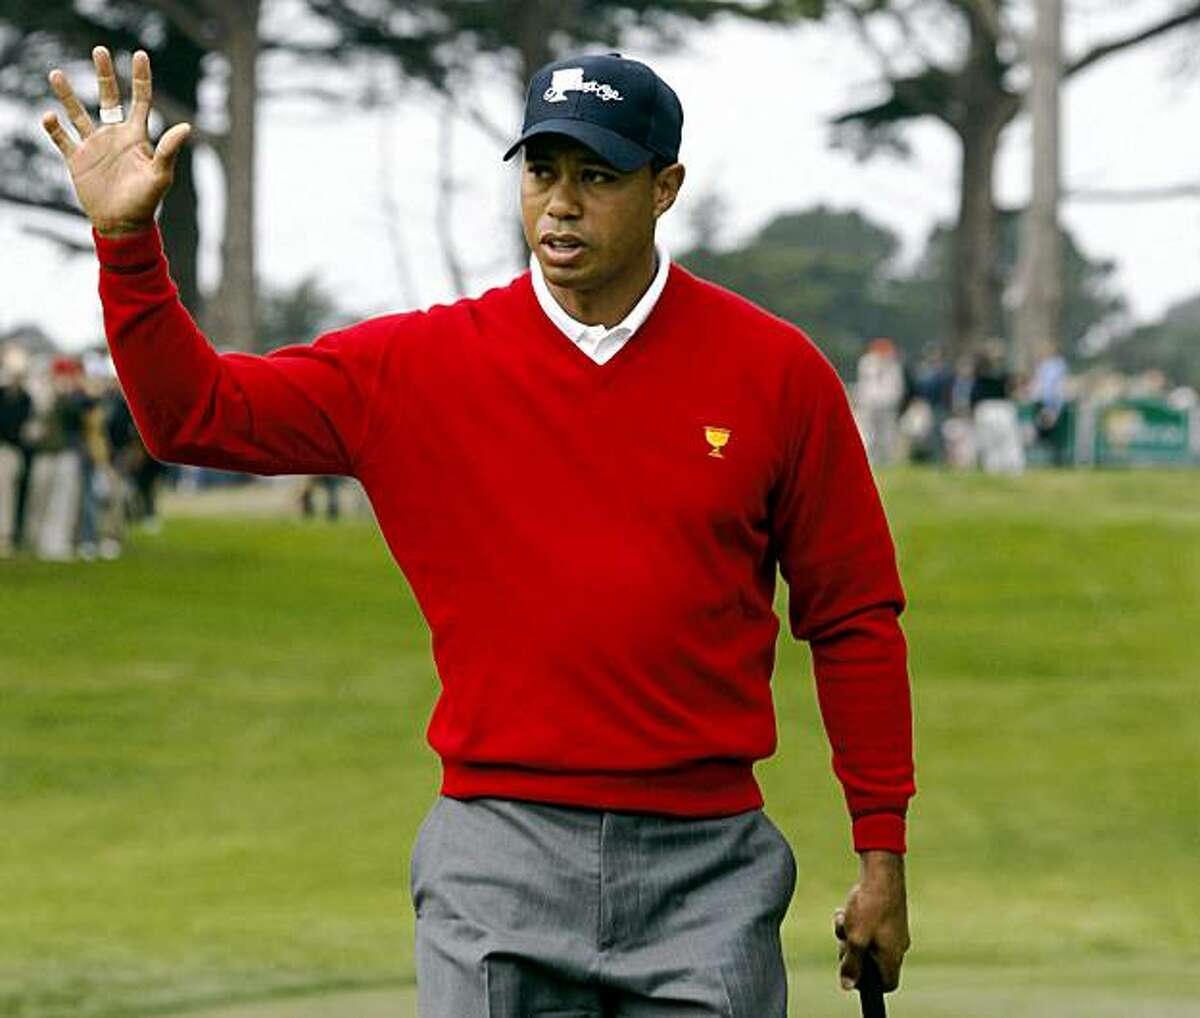 United States Tiger Woods gestures to the galley after sinking a put on 2nd hole to score another point for the Americans over Geoff Ogilvy and Ryo Ishikawa from the International team in the first day of foursome Matches in the 2009 Presidents Cup at Harding Park in San Francisco California Thursday Oct 8, 2009 prezcup09